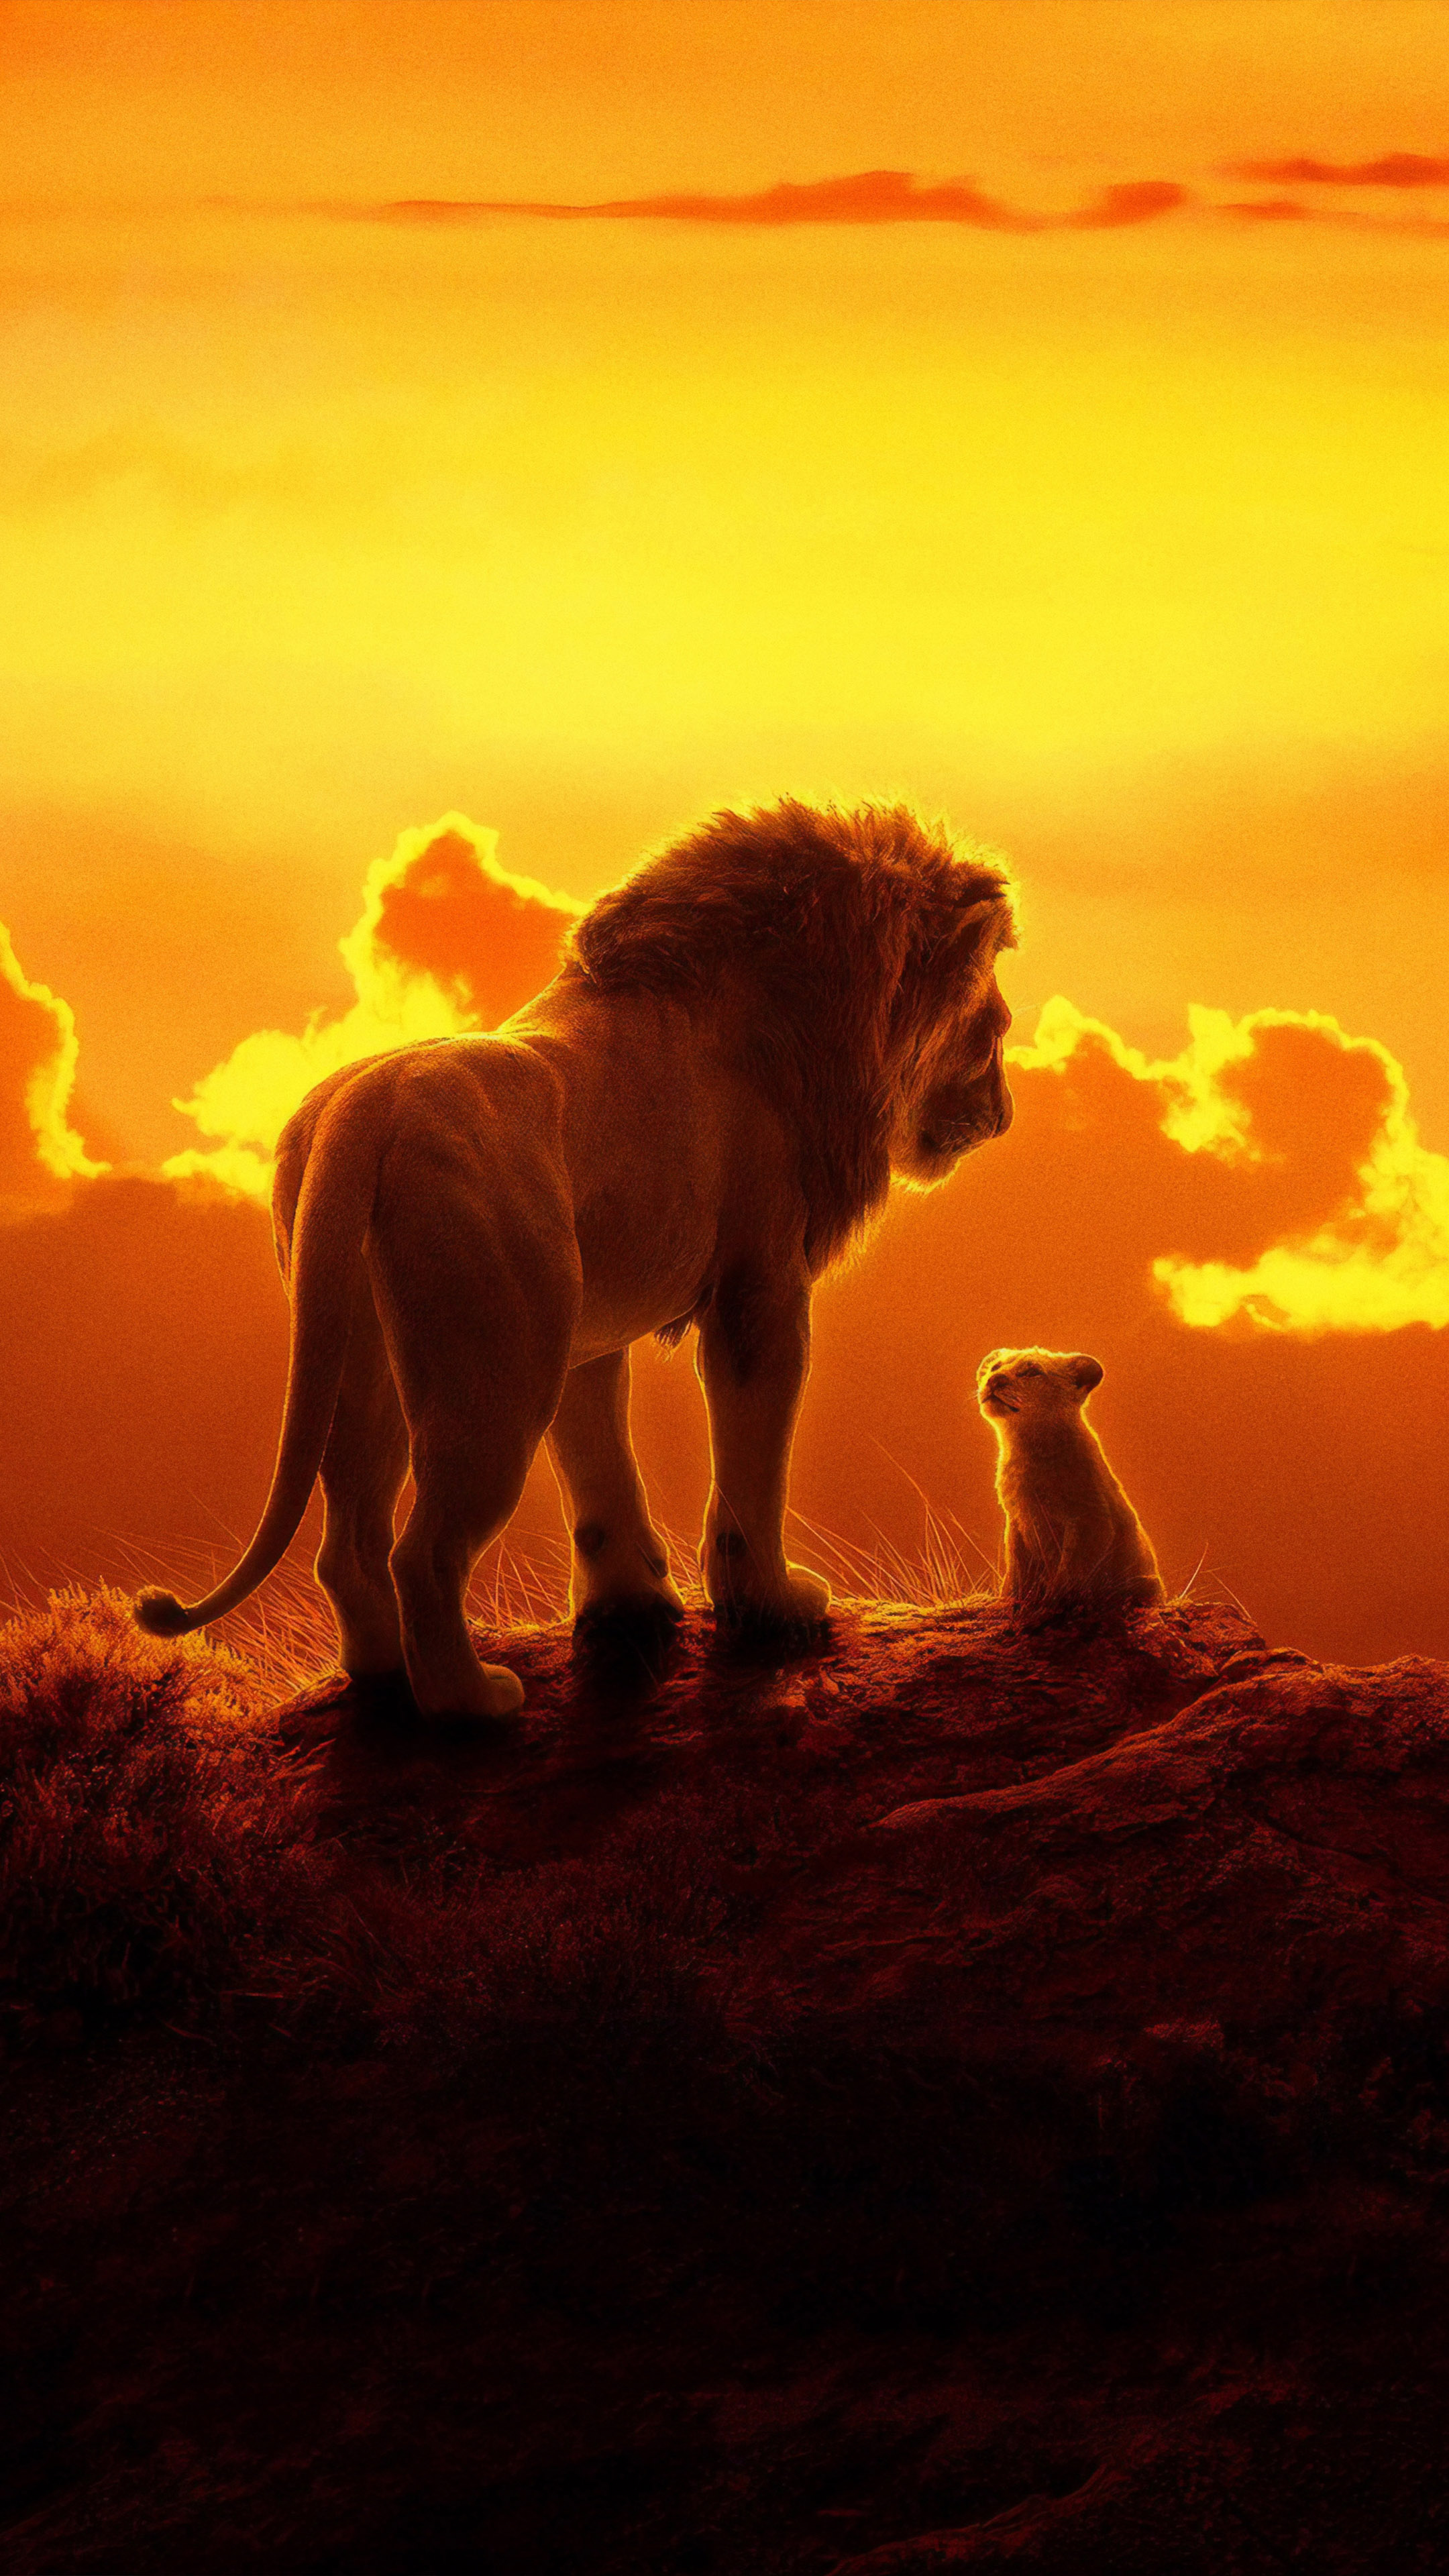 The Lion King Animation 2019 Free 4K Ultra HD Mobile Wallpaper